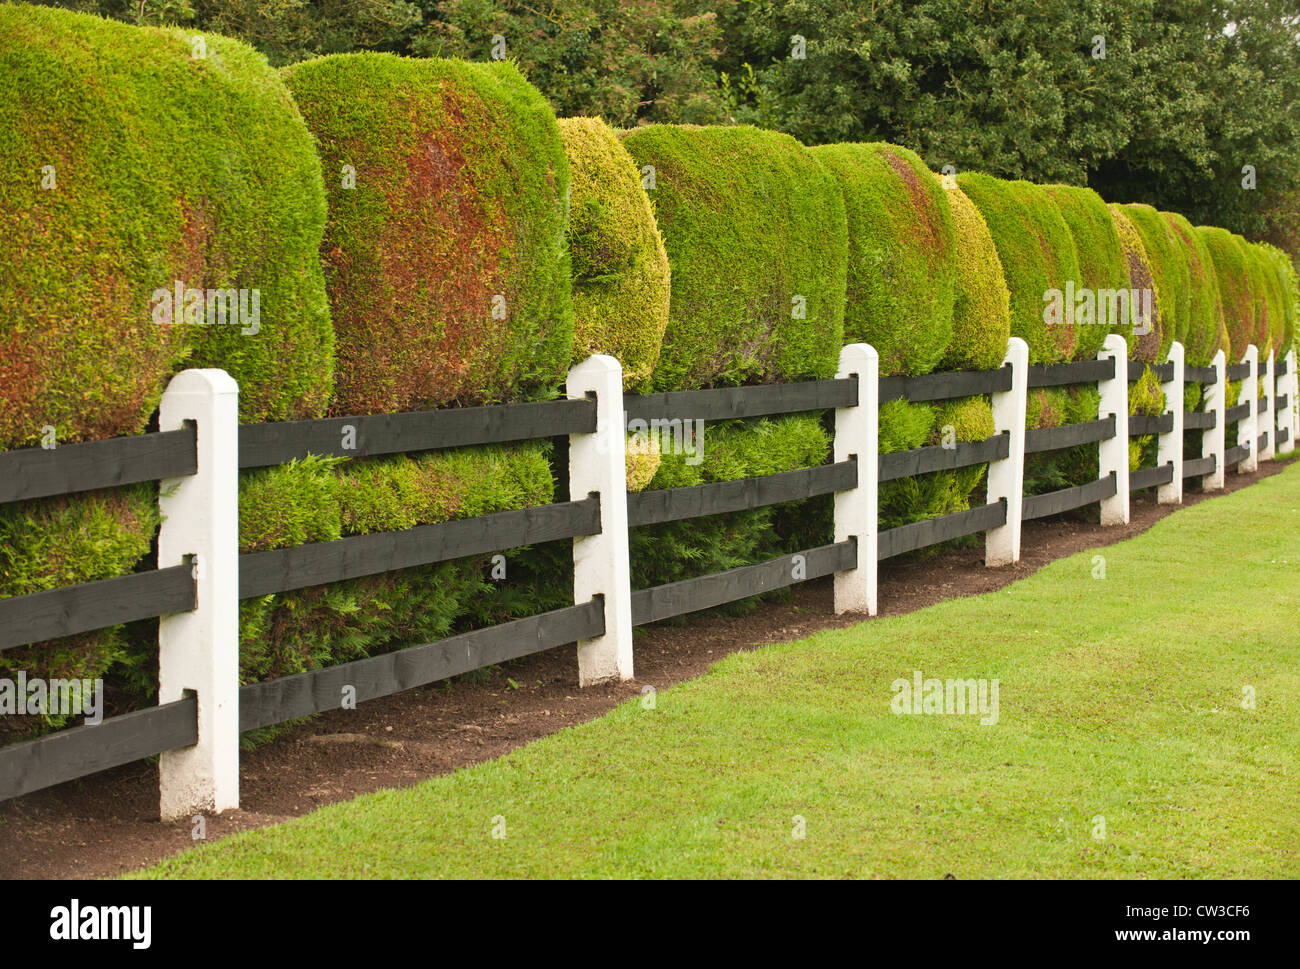 The Formation Of Some Garden Hedges Against A Railing In Ireland